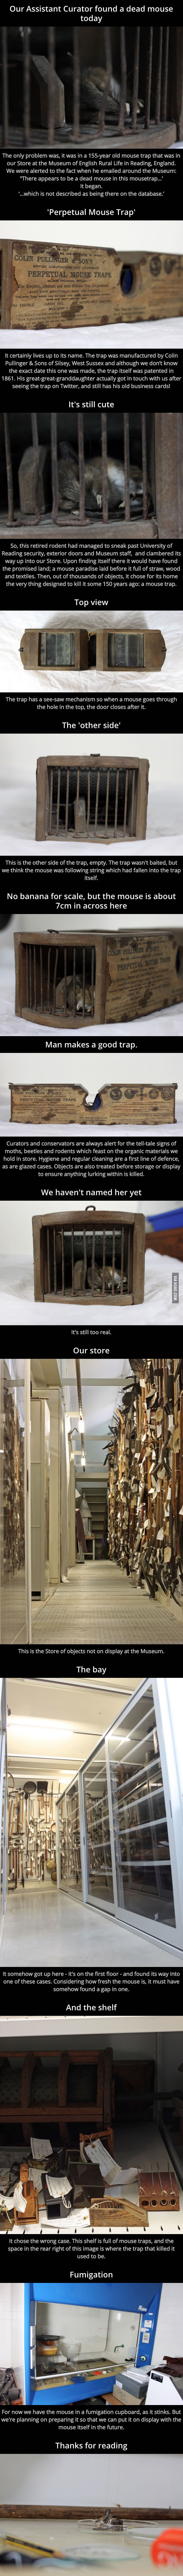 A mouse has died inside a 155-year-old mousetrap in a museum - 9GAG